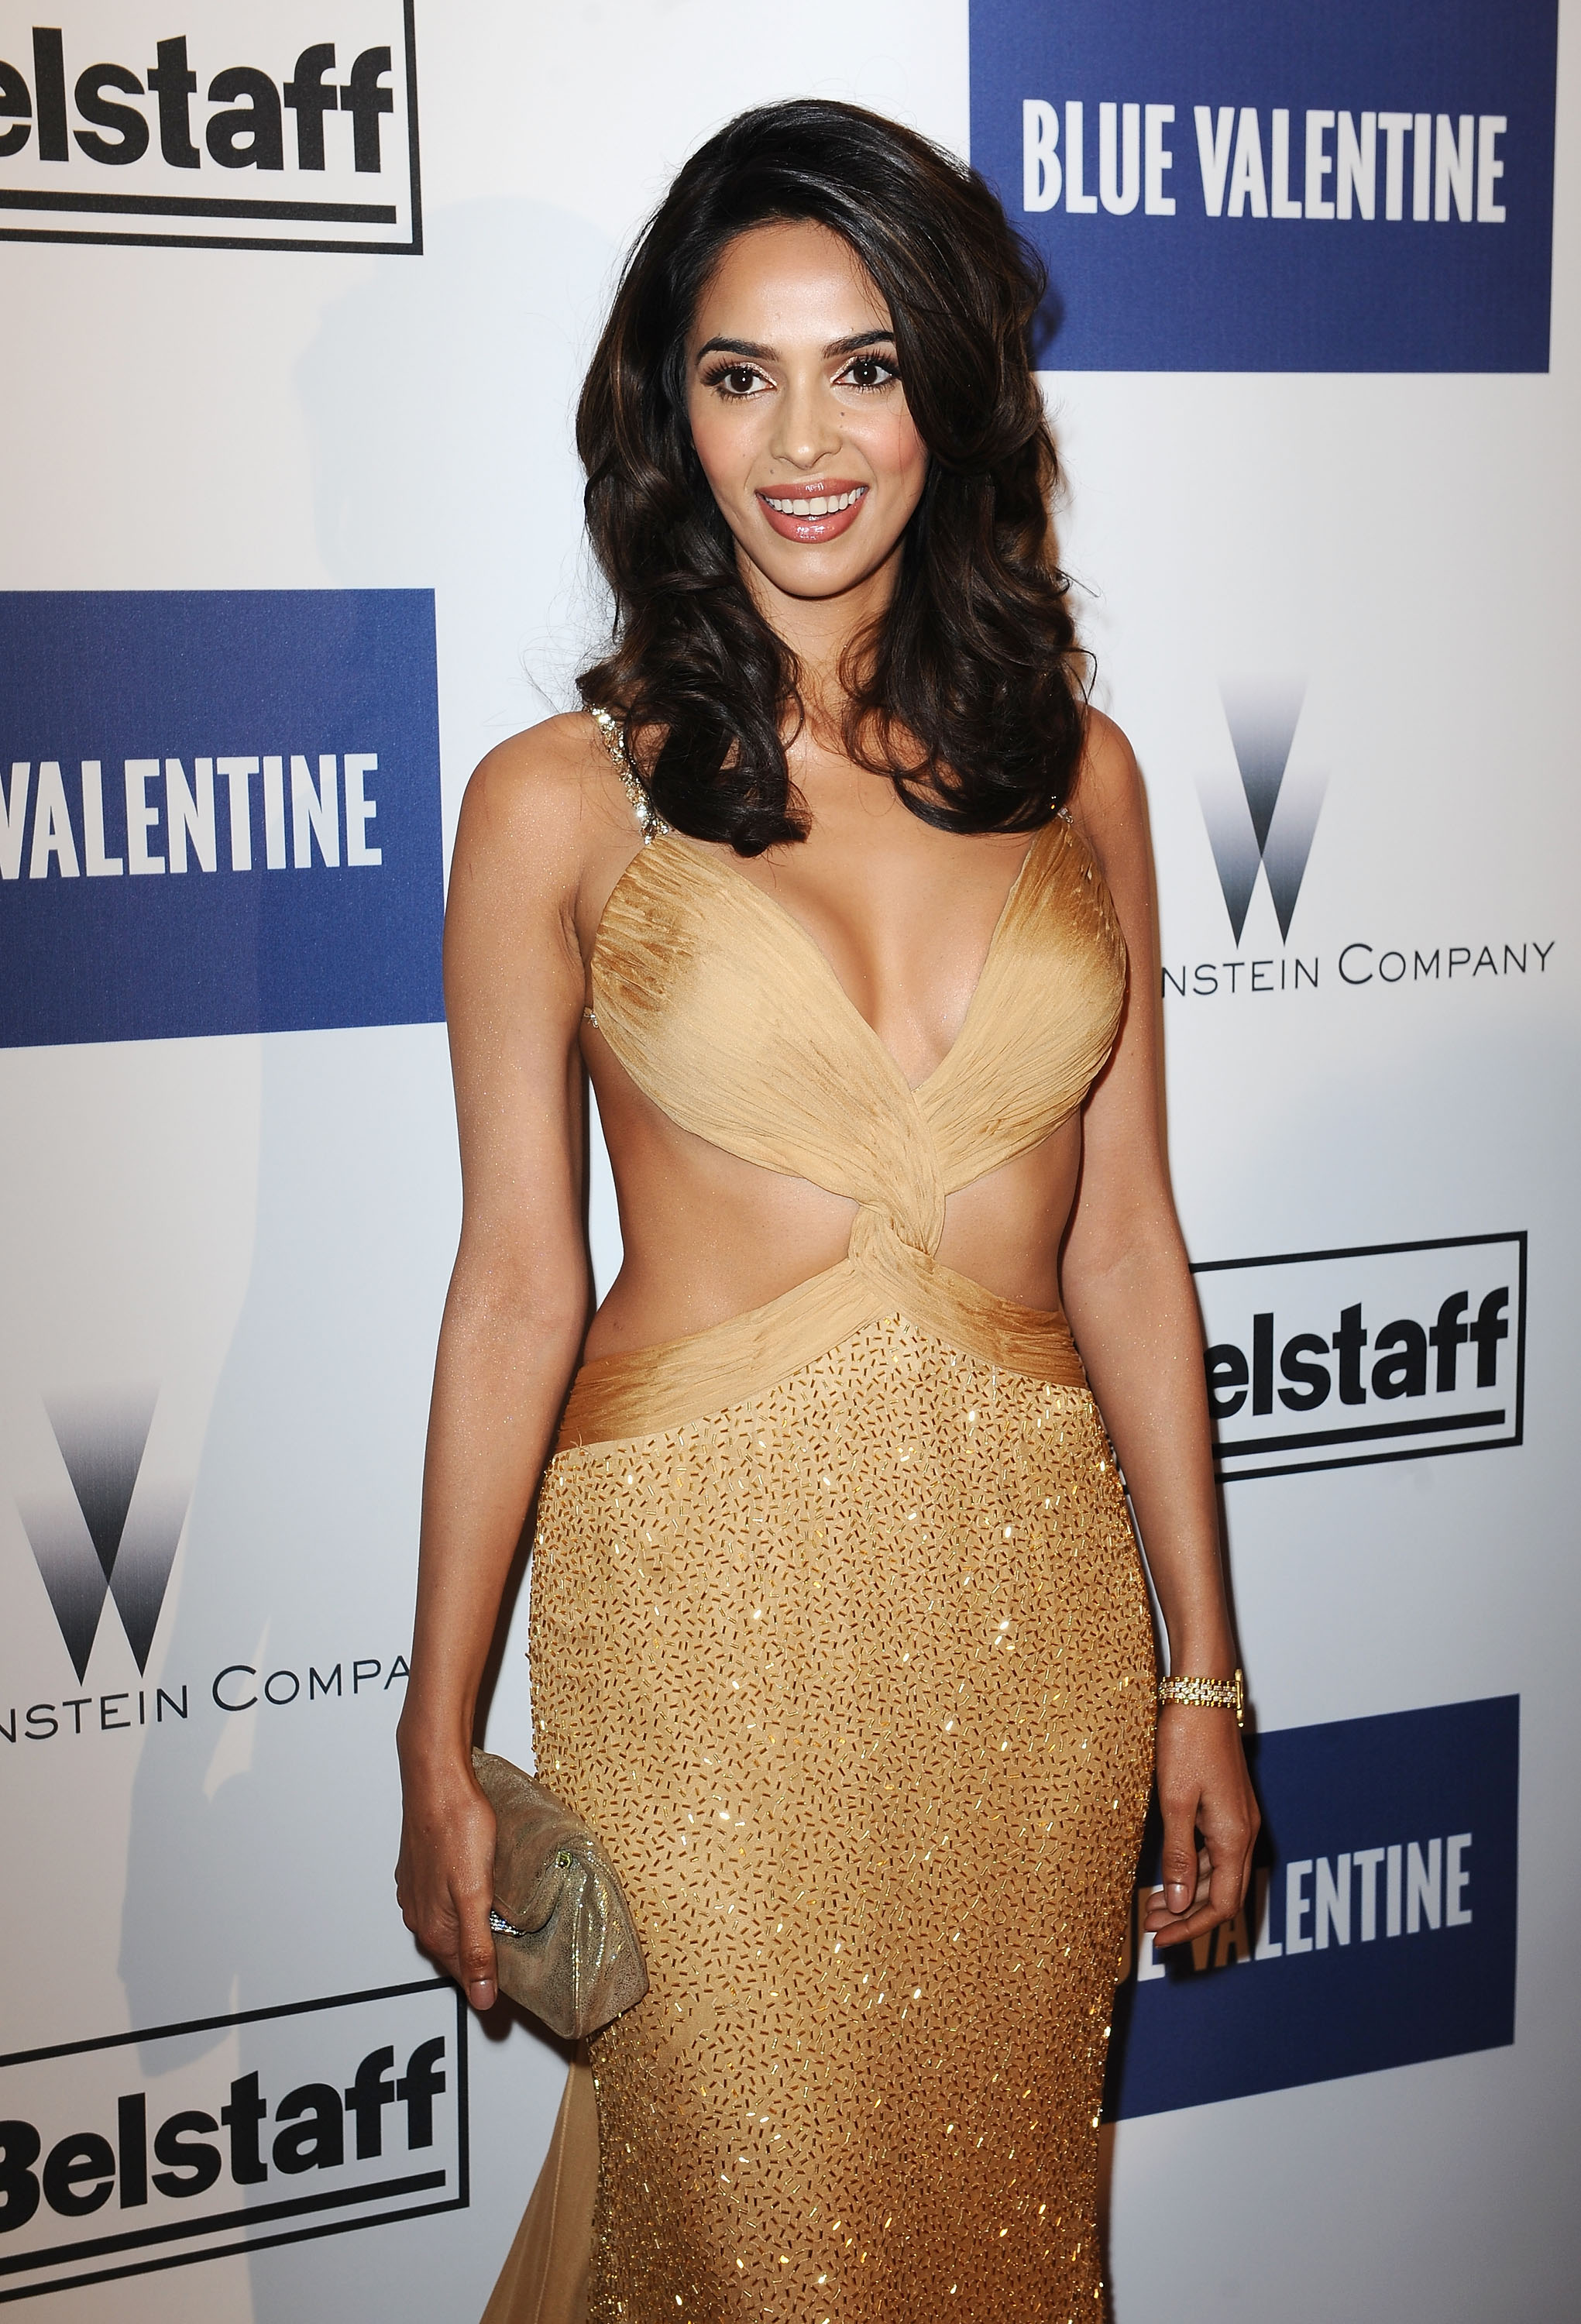 mallika sherawat belly dancemallika sherawat instagram, mallika sherawat wikipedia, mallika sherawat vegan, mallika sherawat first movie, mallika sherawat body measurement, mallika sherawat belly dance, mallika sherawat film, mallika sherawat age, mallika sherawat films list, mallika sherawat, mallika sherawat facebook, mallika sherawat movies list